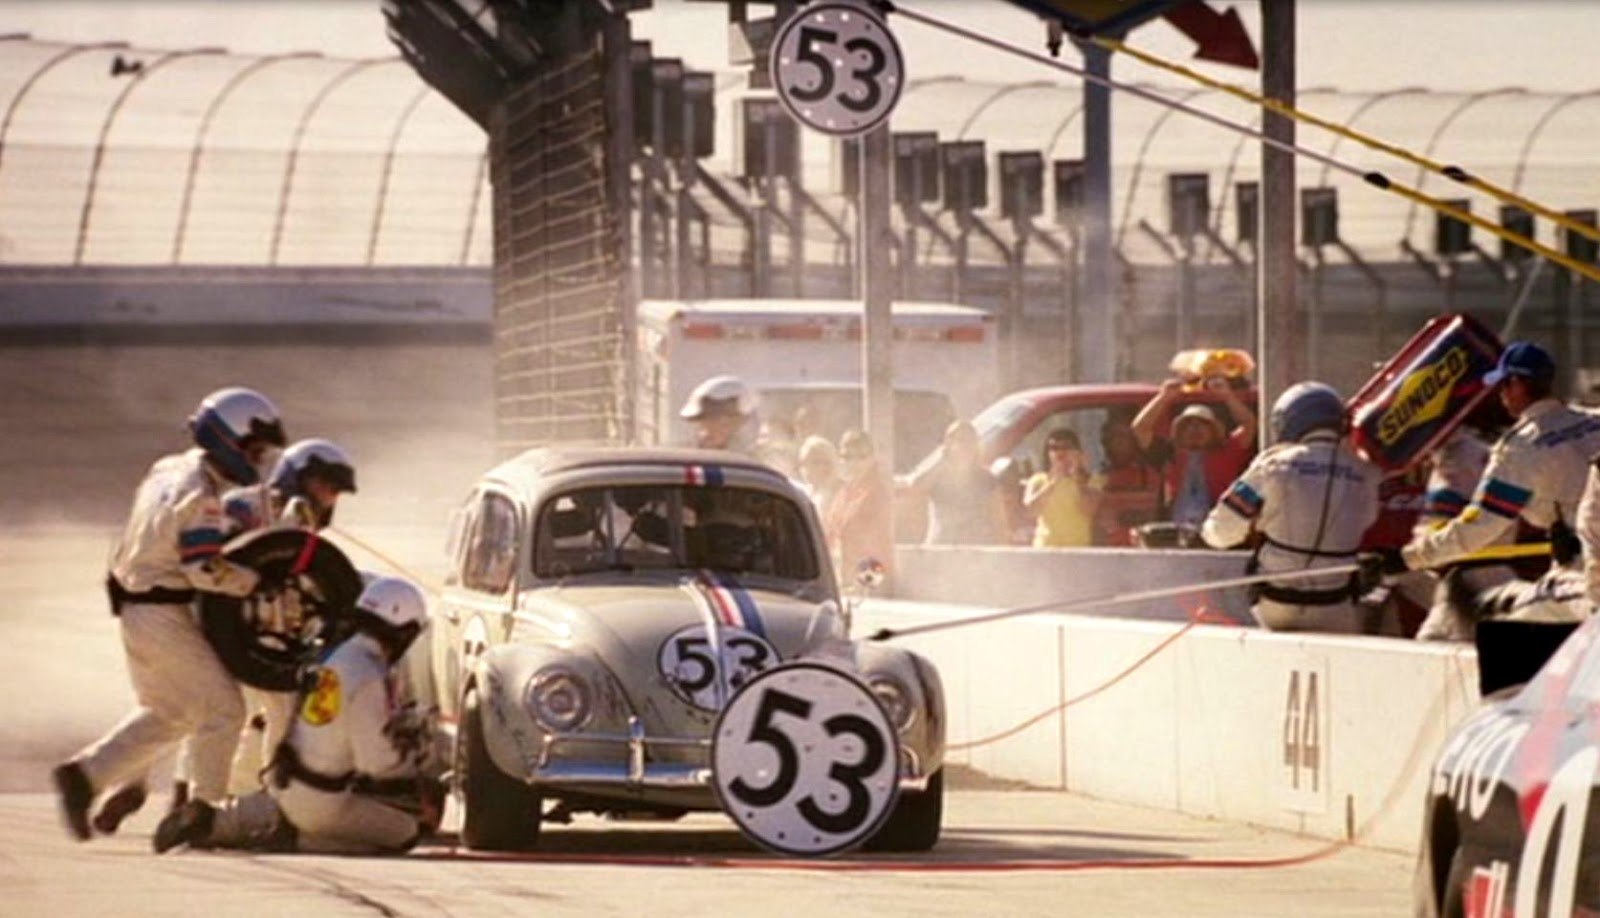 Just A Car Guy: Herbie: Fully Loaded... another fun Herbie movie, which  never let you down. Reminds you how many great race cars have been in  Herbie movies